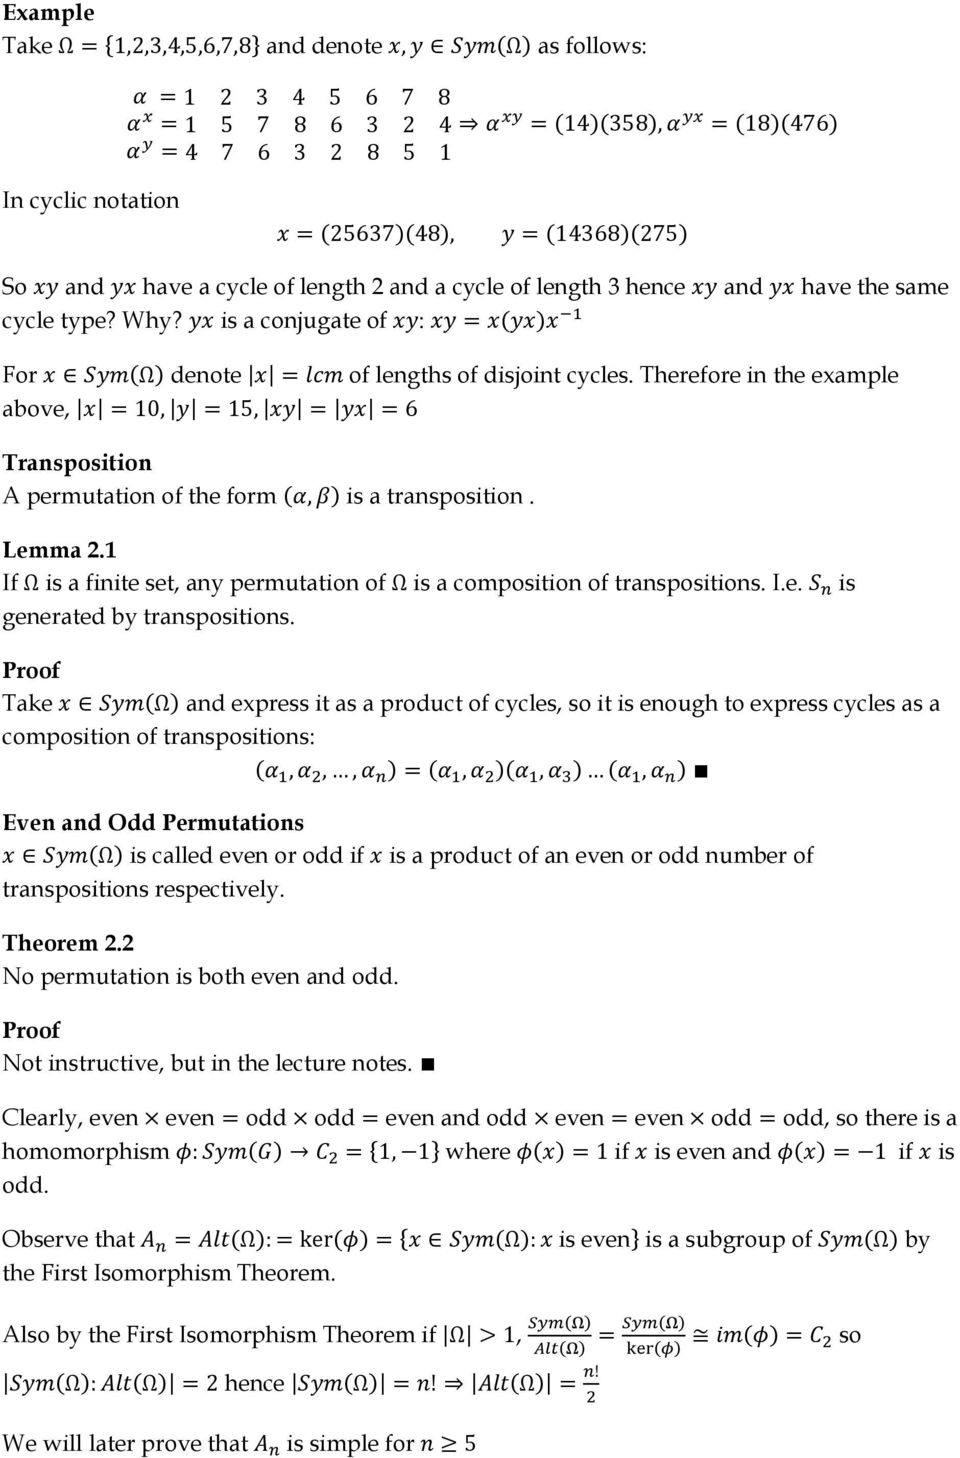 1 If is a finite set, any permutation of is a composition of transpositions. I.e. is generated by transpositions.